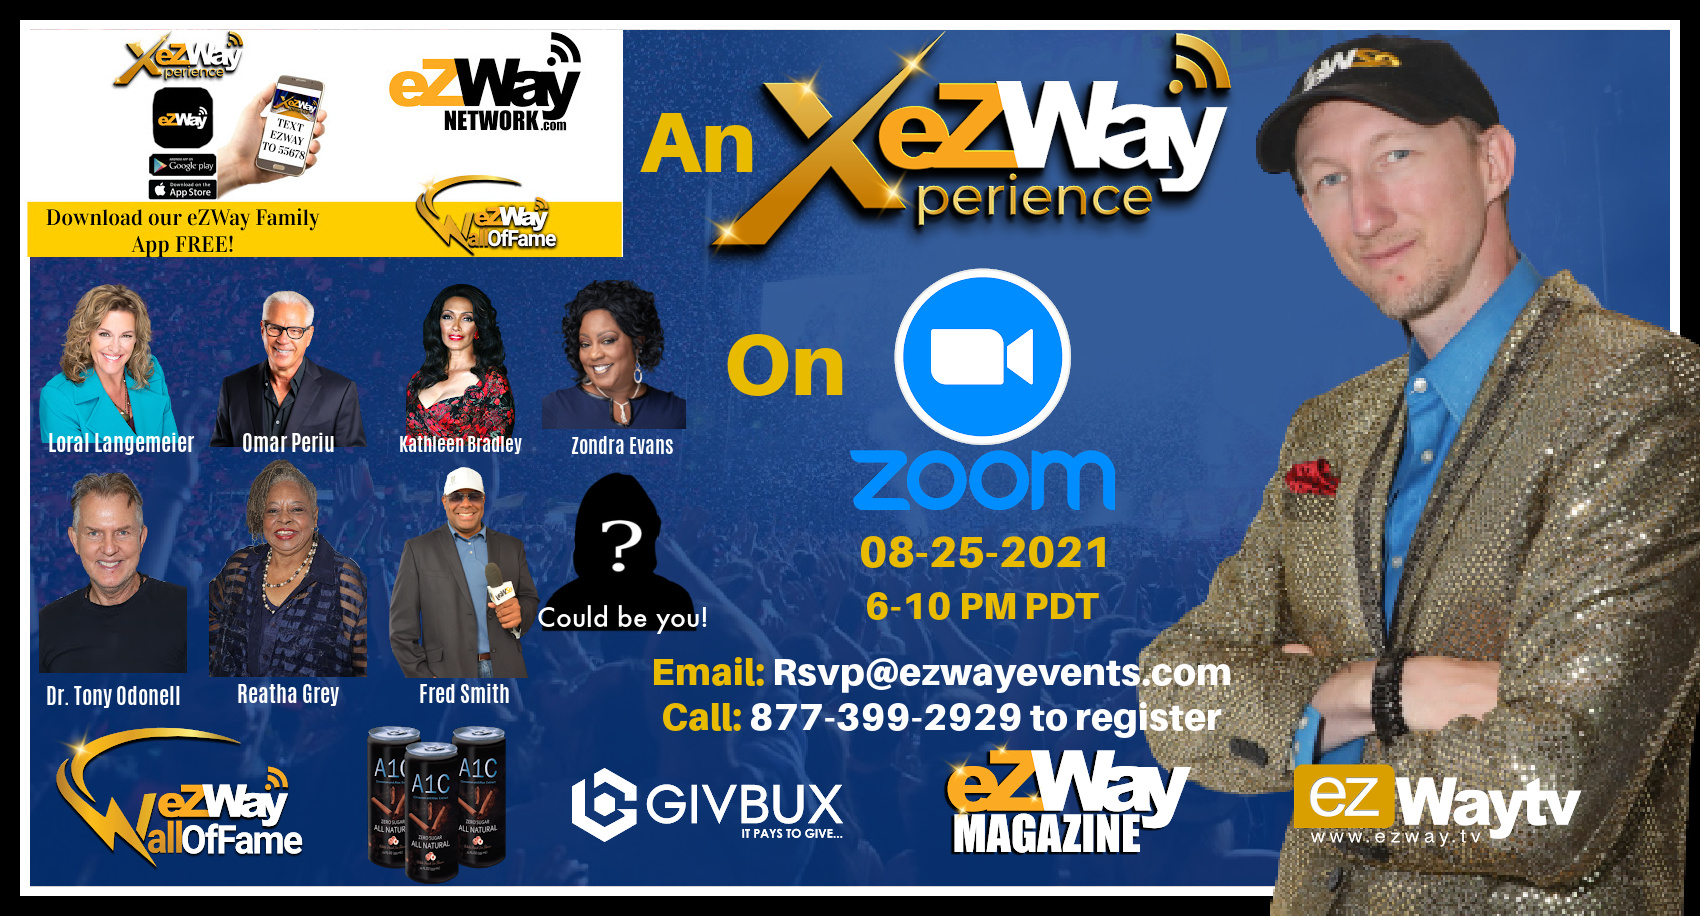 An eZWay Networking Zoom Xperience